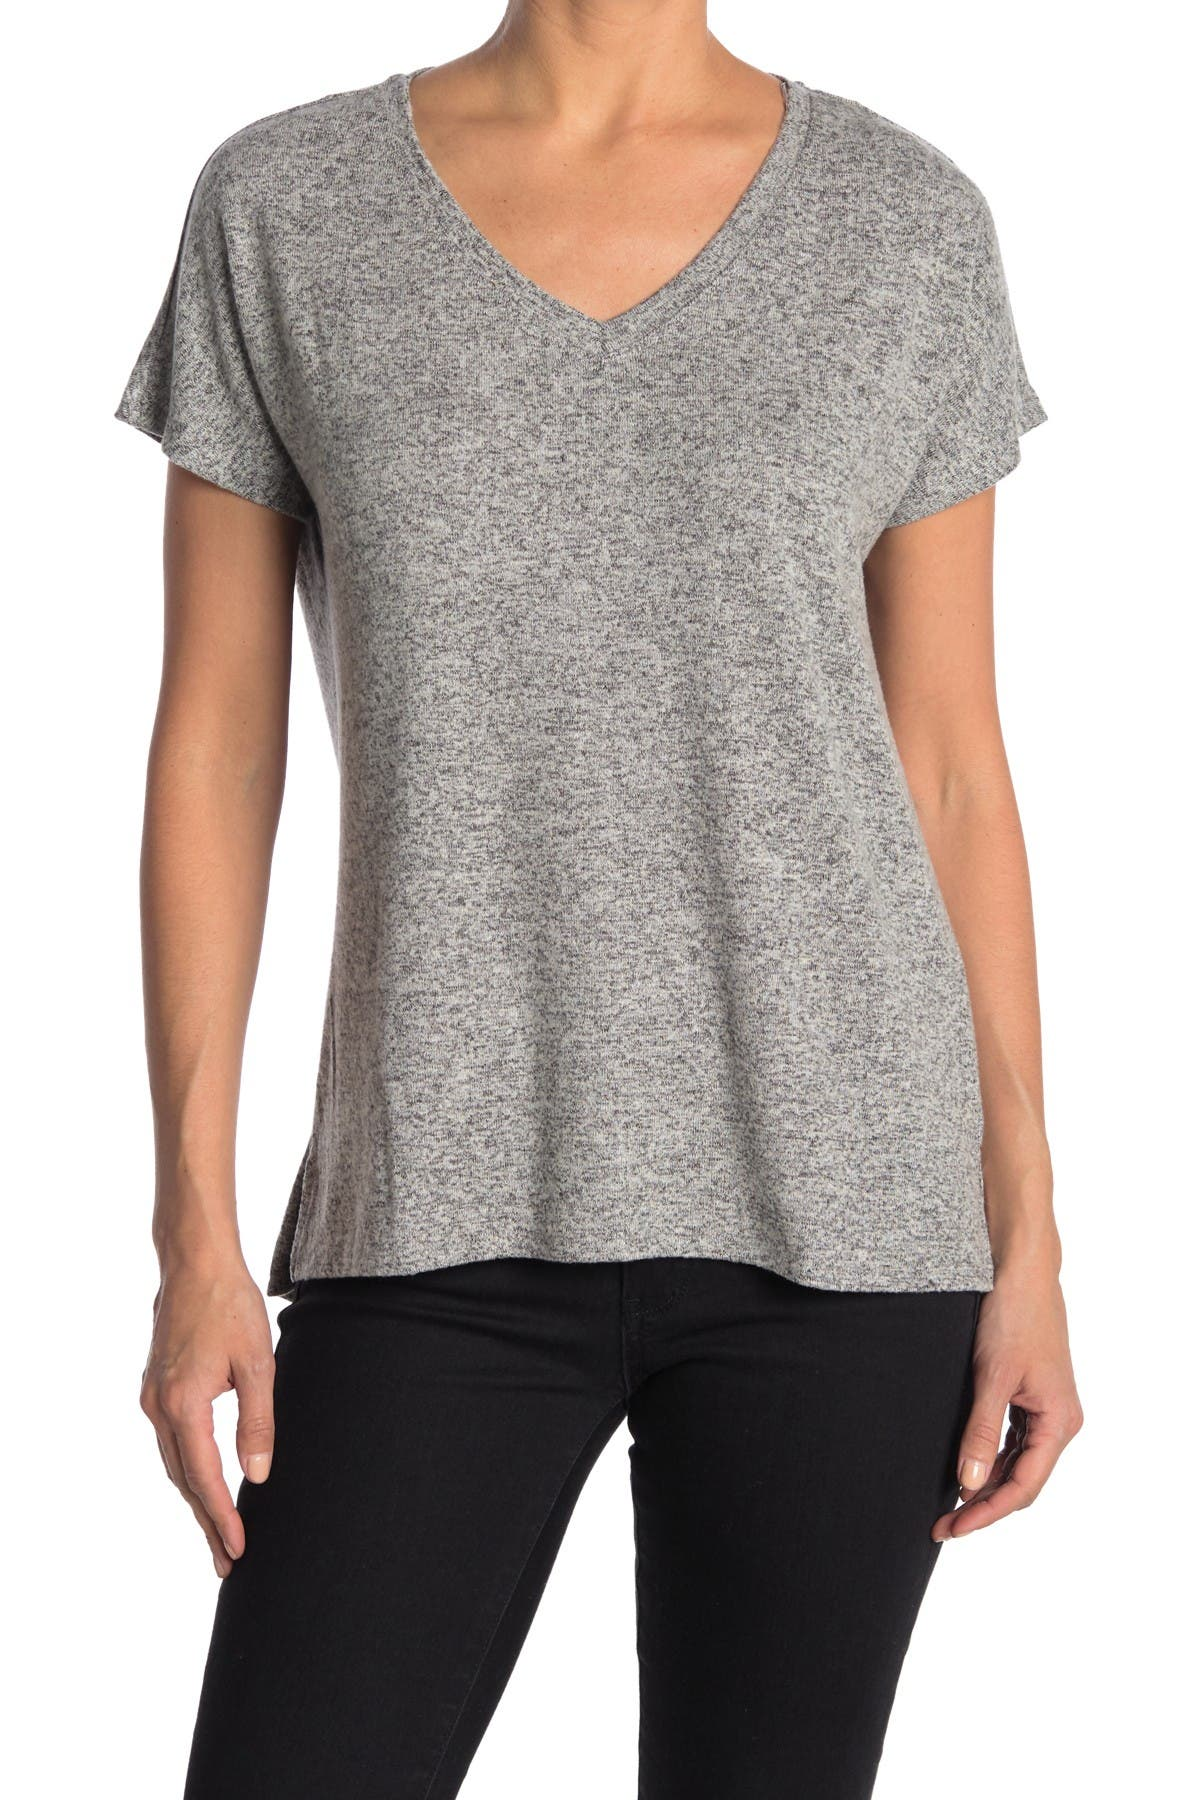 Image of FOR THE REPUBLIC V-Neck Short Dolman Sleeve Top